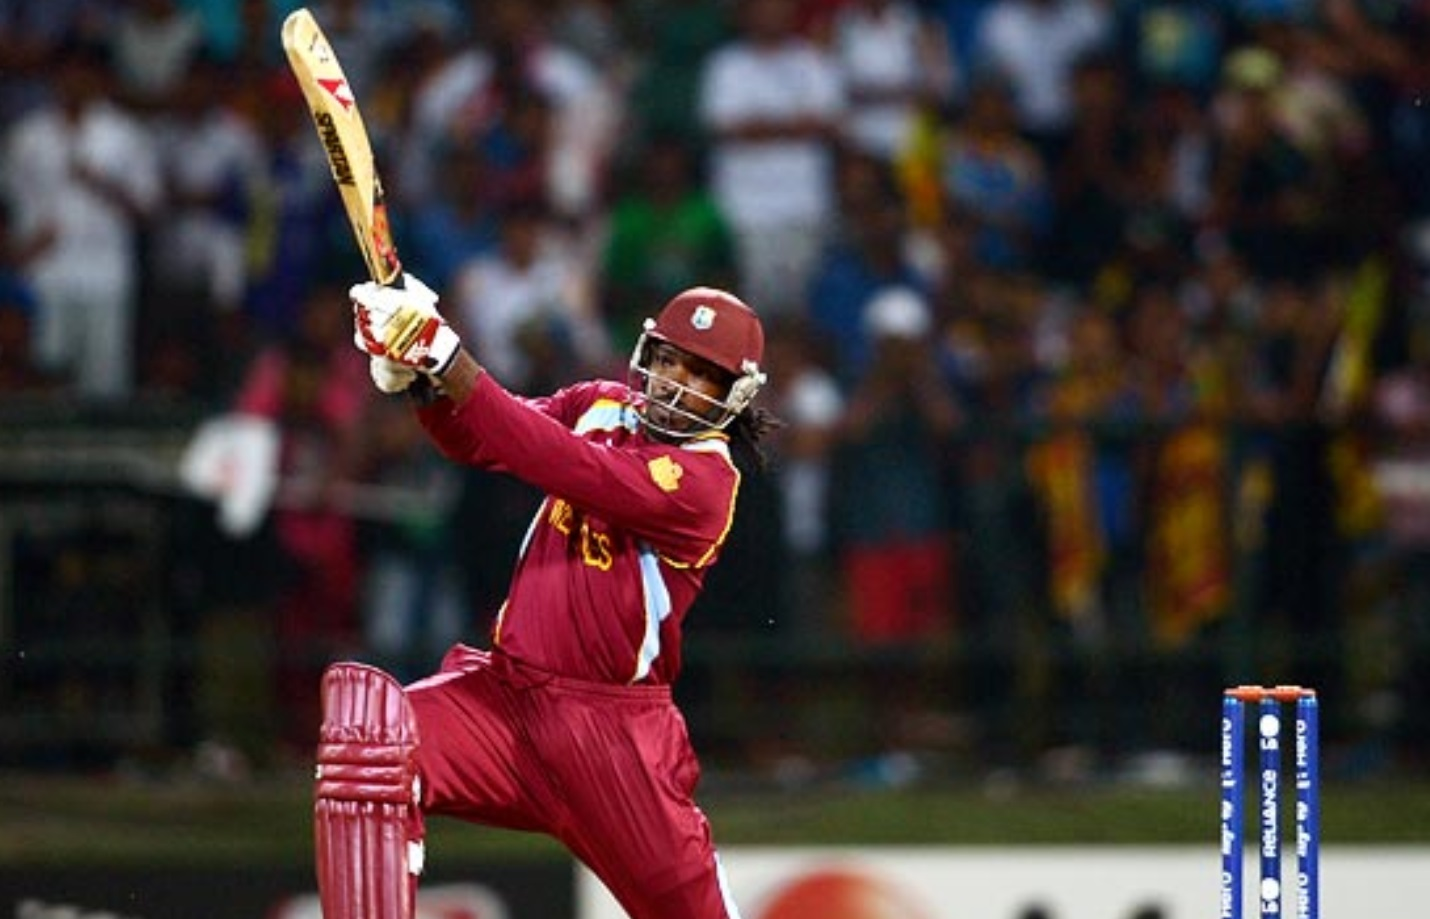 Chris Gayle scores 252 sixes in 275 matches